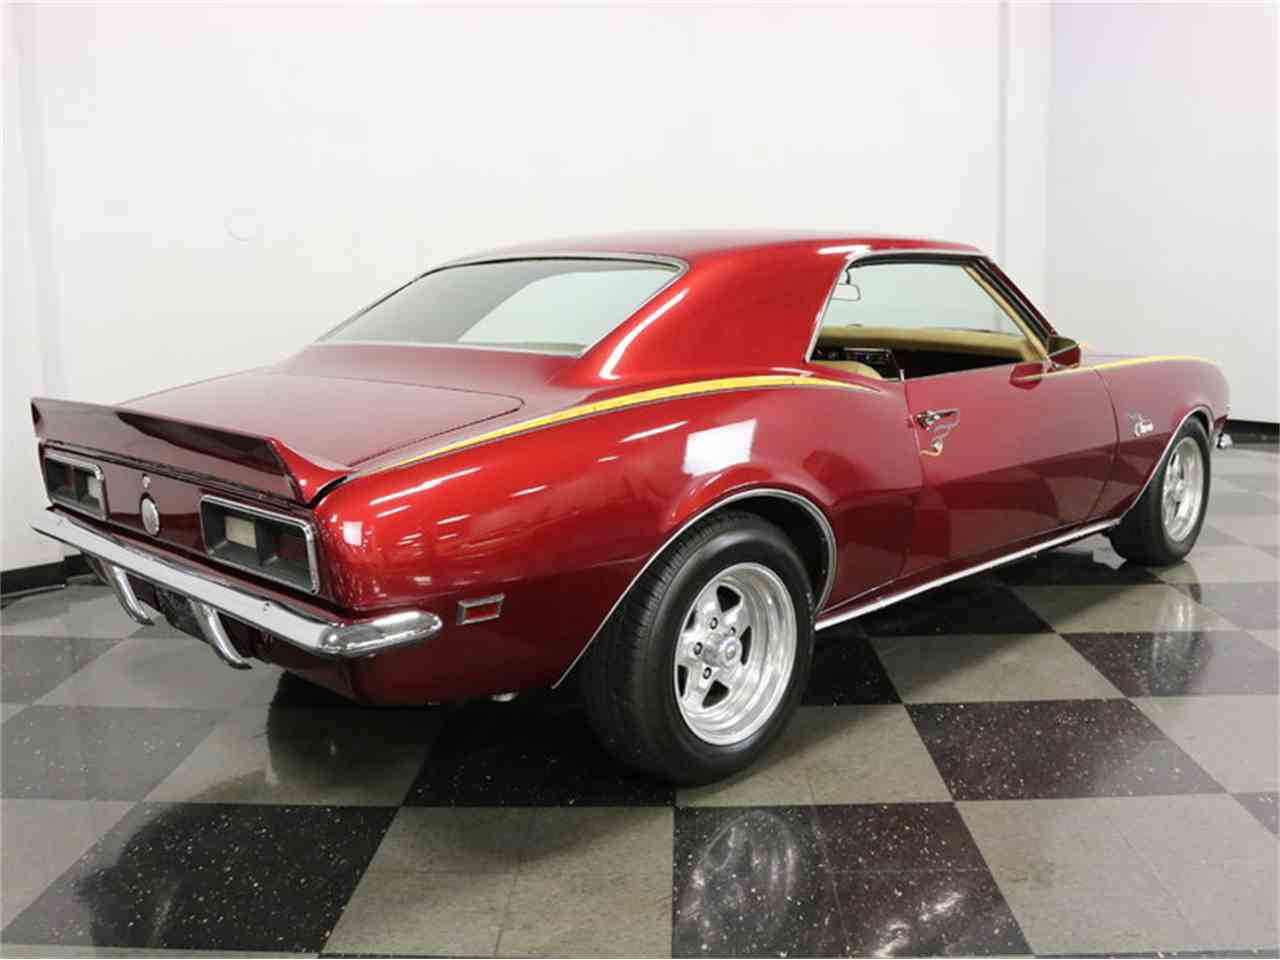 Large Picture of 1968 Camaro SS located in Texas - $29,995.00 Offered by Streetside Classics - Dallas / Fort Worth - LSS3